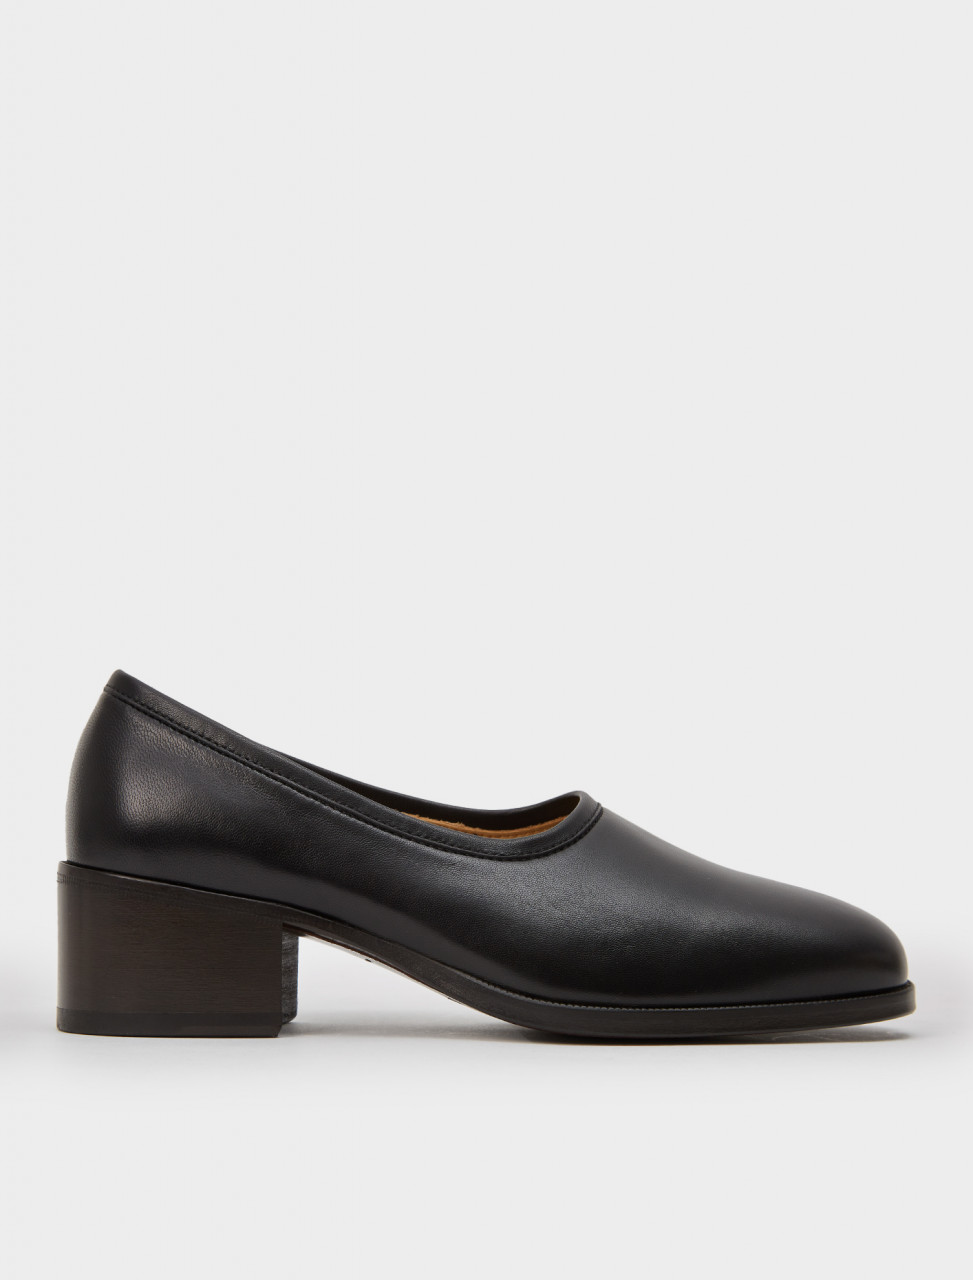 218-W-204-FO256-LL153-999 LEMAIRE HEELED LOAFERS BLACK